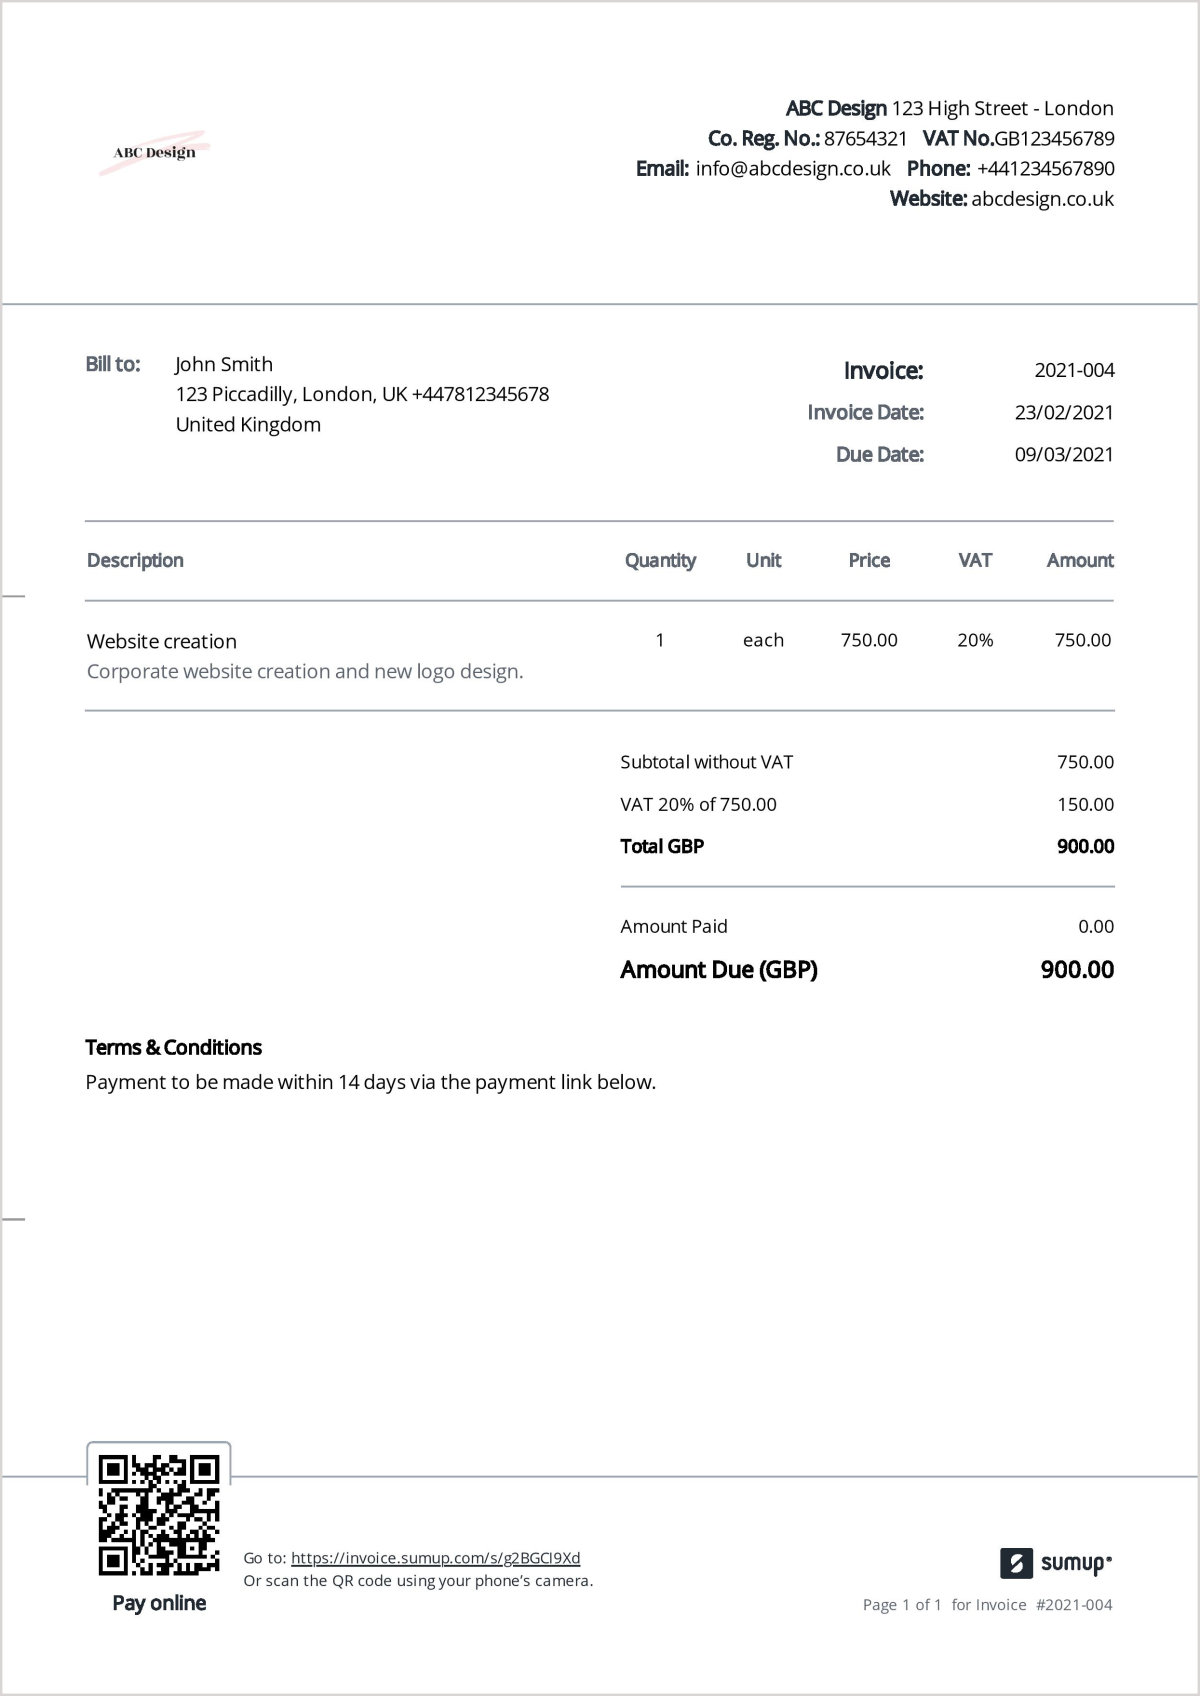 Example of a VAT invoice created using SumUp Invoices